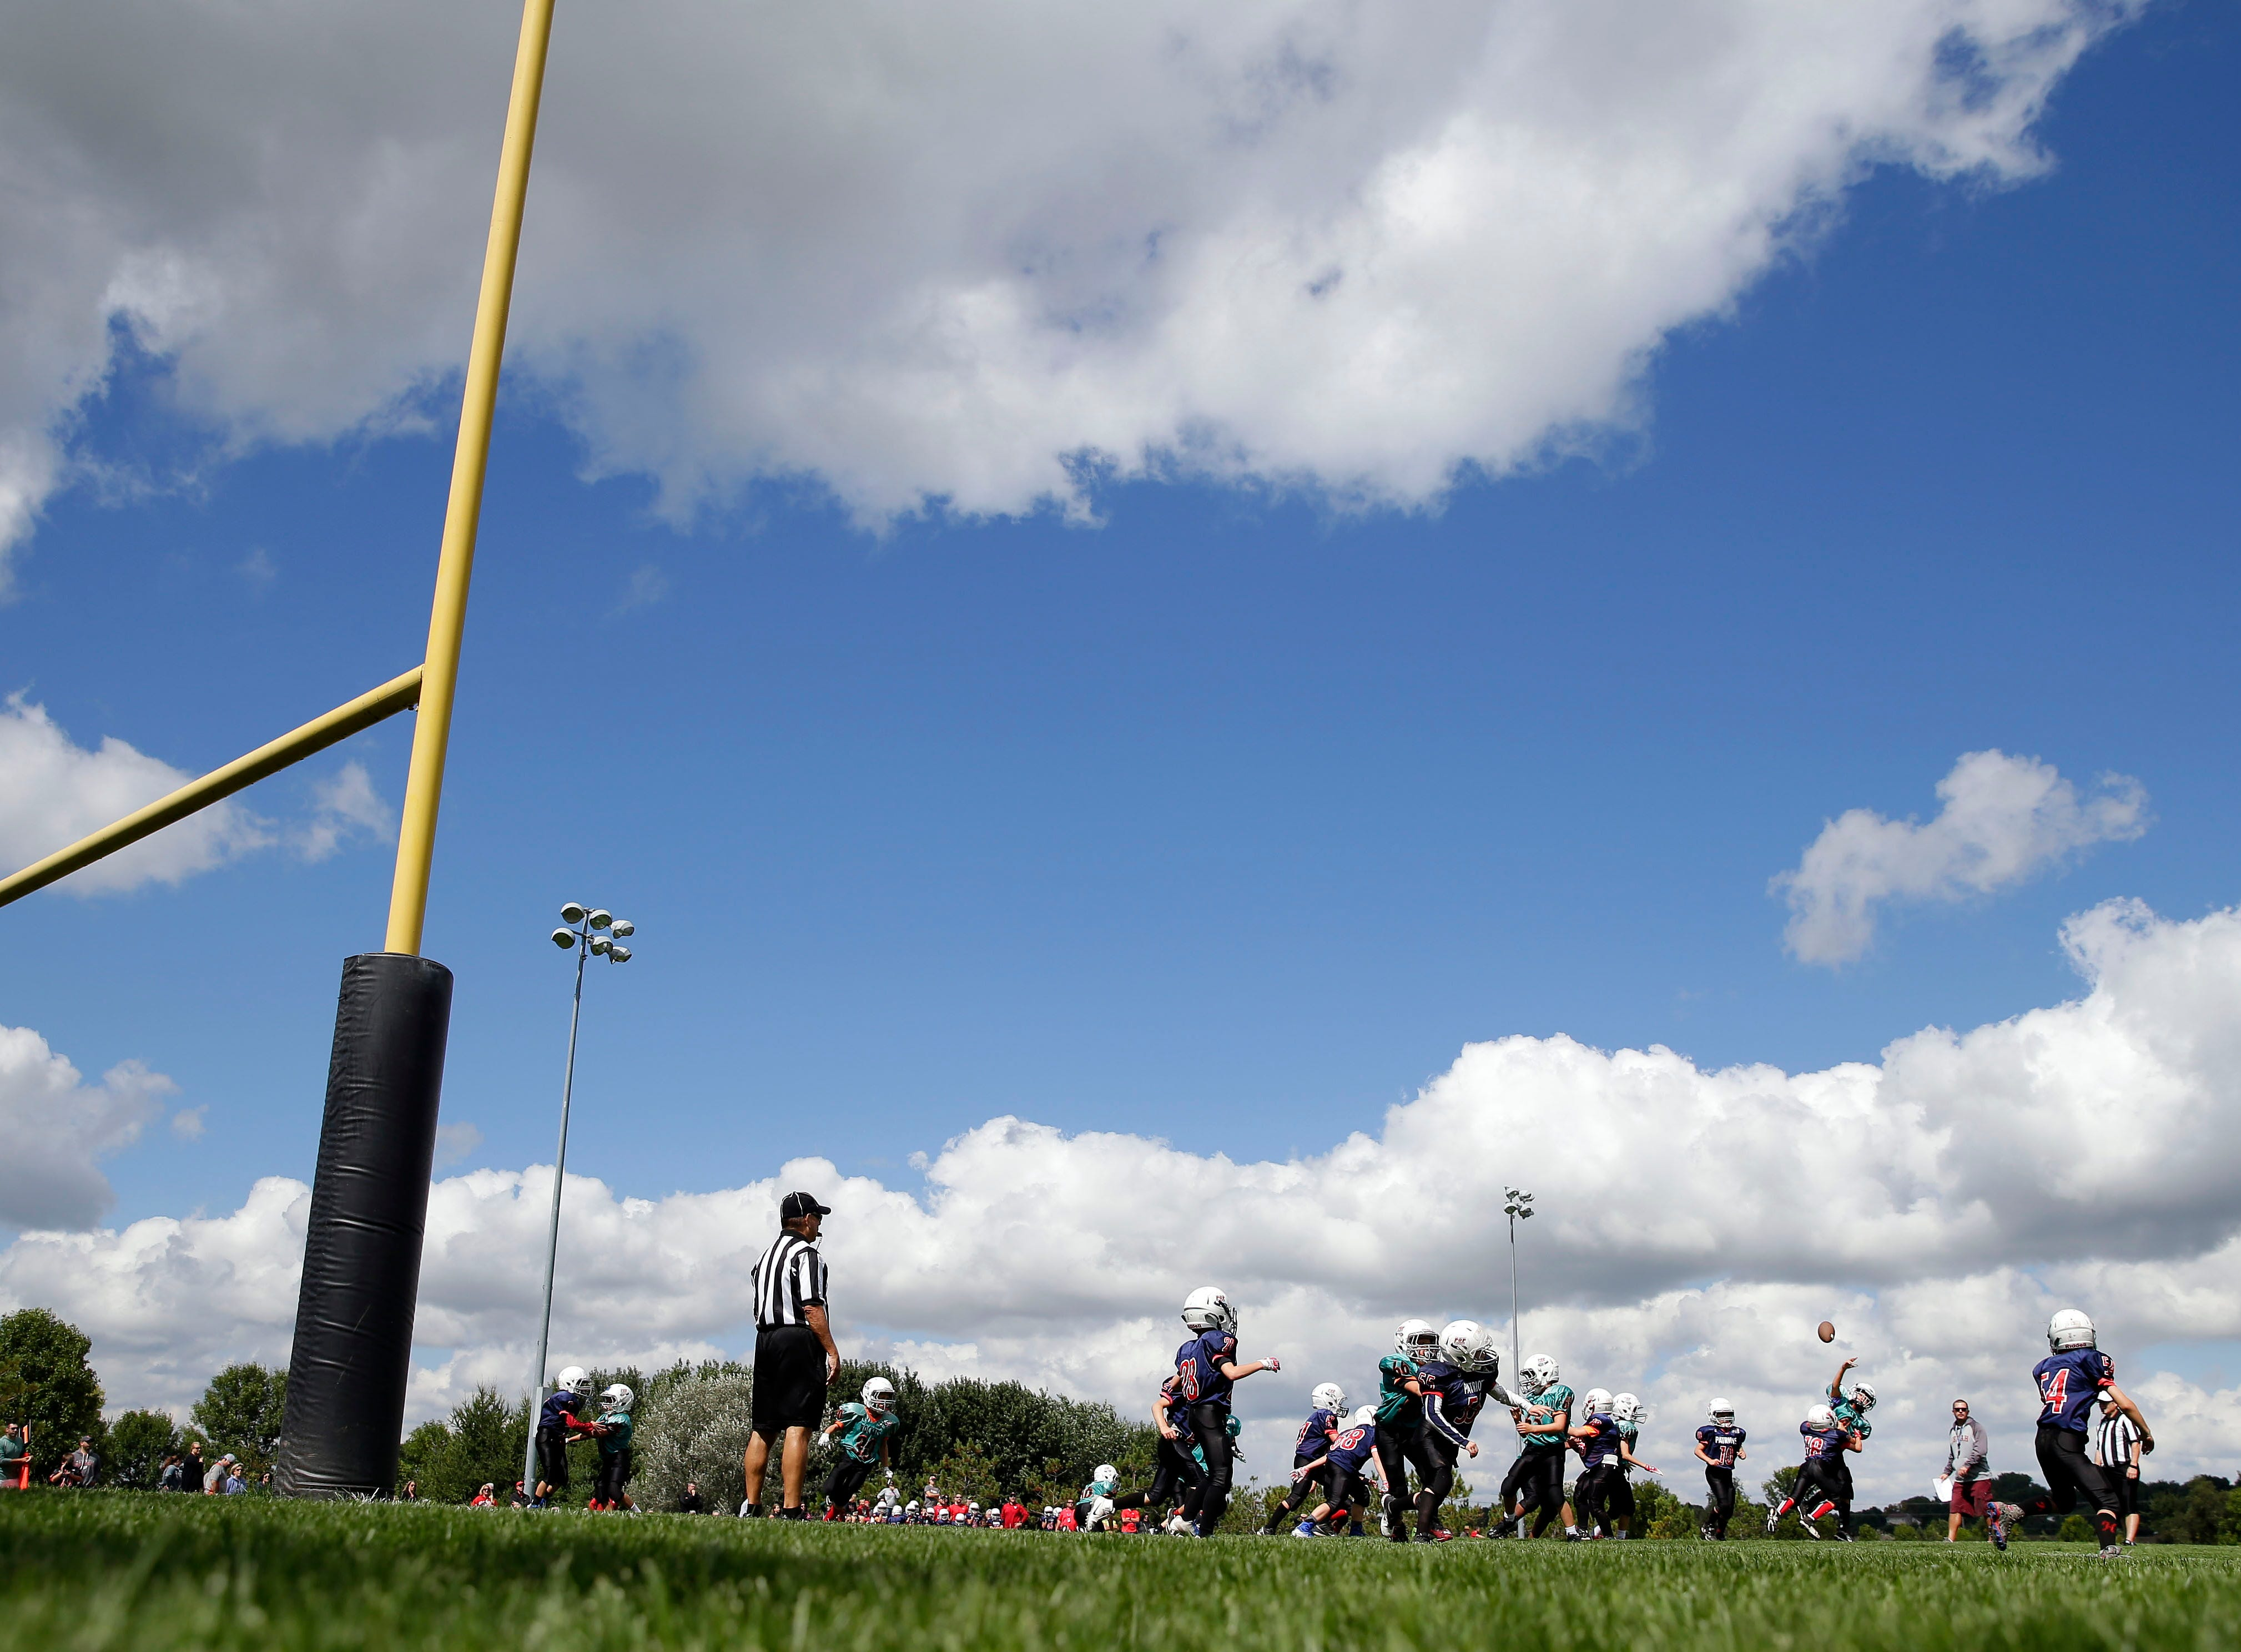 Fox Valley Pop Warner Football opens the season Saturday, September 8, 2018, at Plamann Park in Grand Chute, Wis.Ron Page/USA TODAY NETWORK-Wisconsin